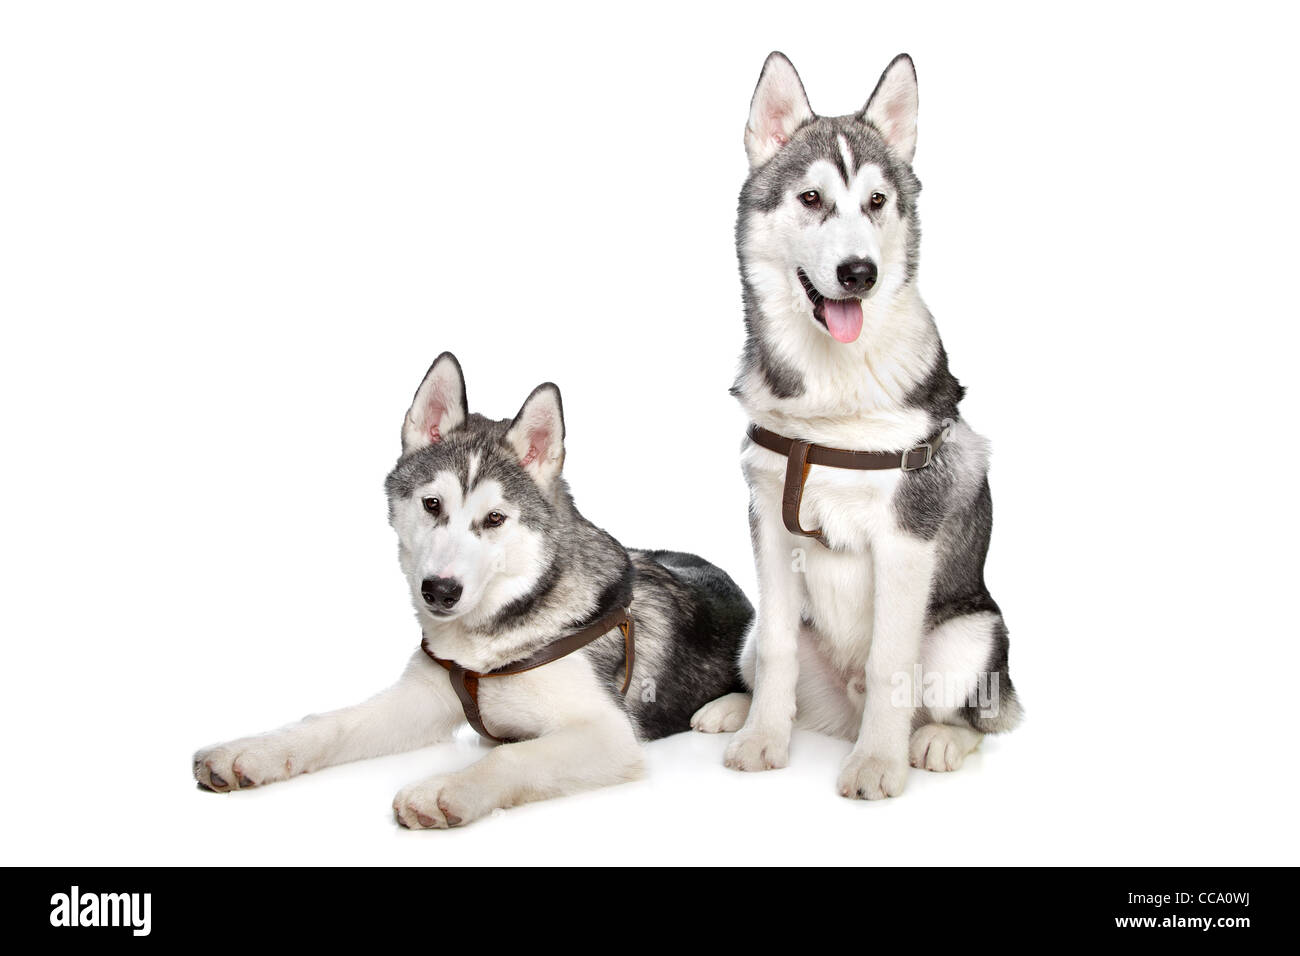 two Siberian husky puppies in front of a white background - Stock Image